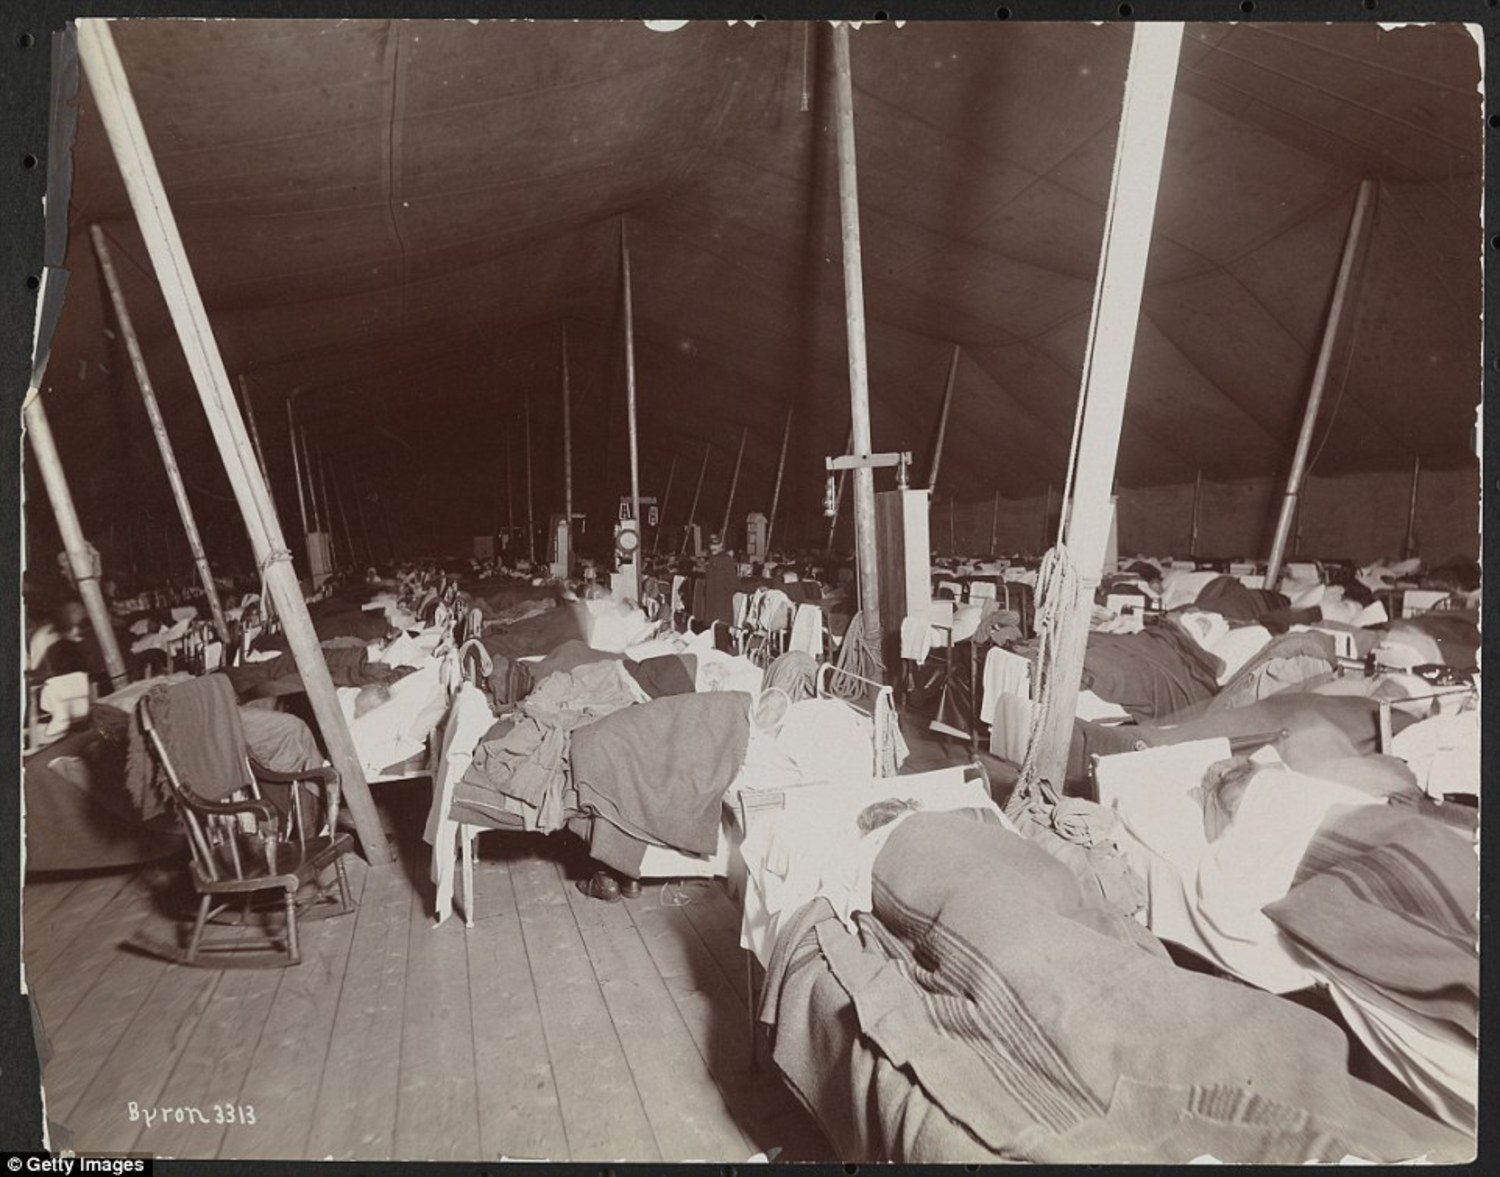 Patients sleeping on beds in a large tent on what was then known as Welfare Island in the mid-1890s. The city's prison was later relocated to Riker's Island, where it remains to this day